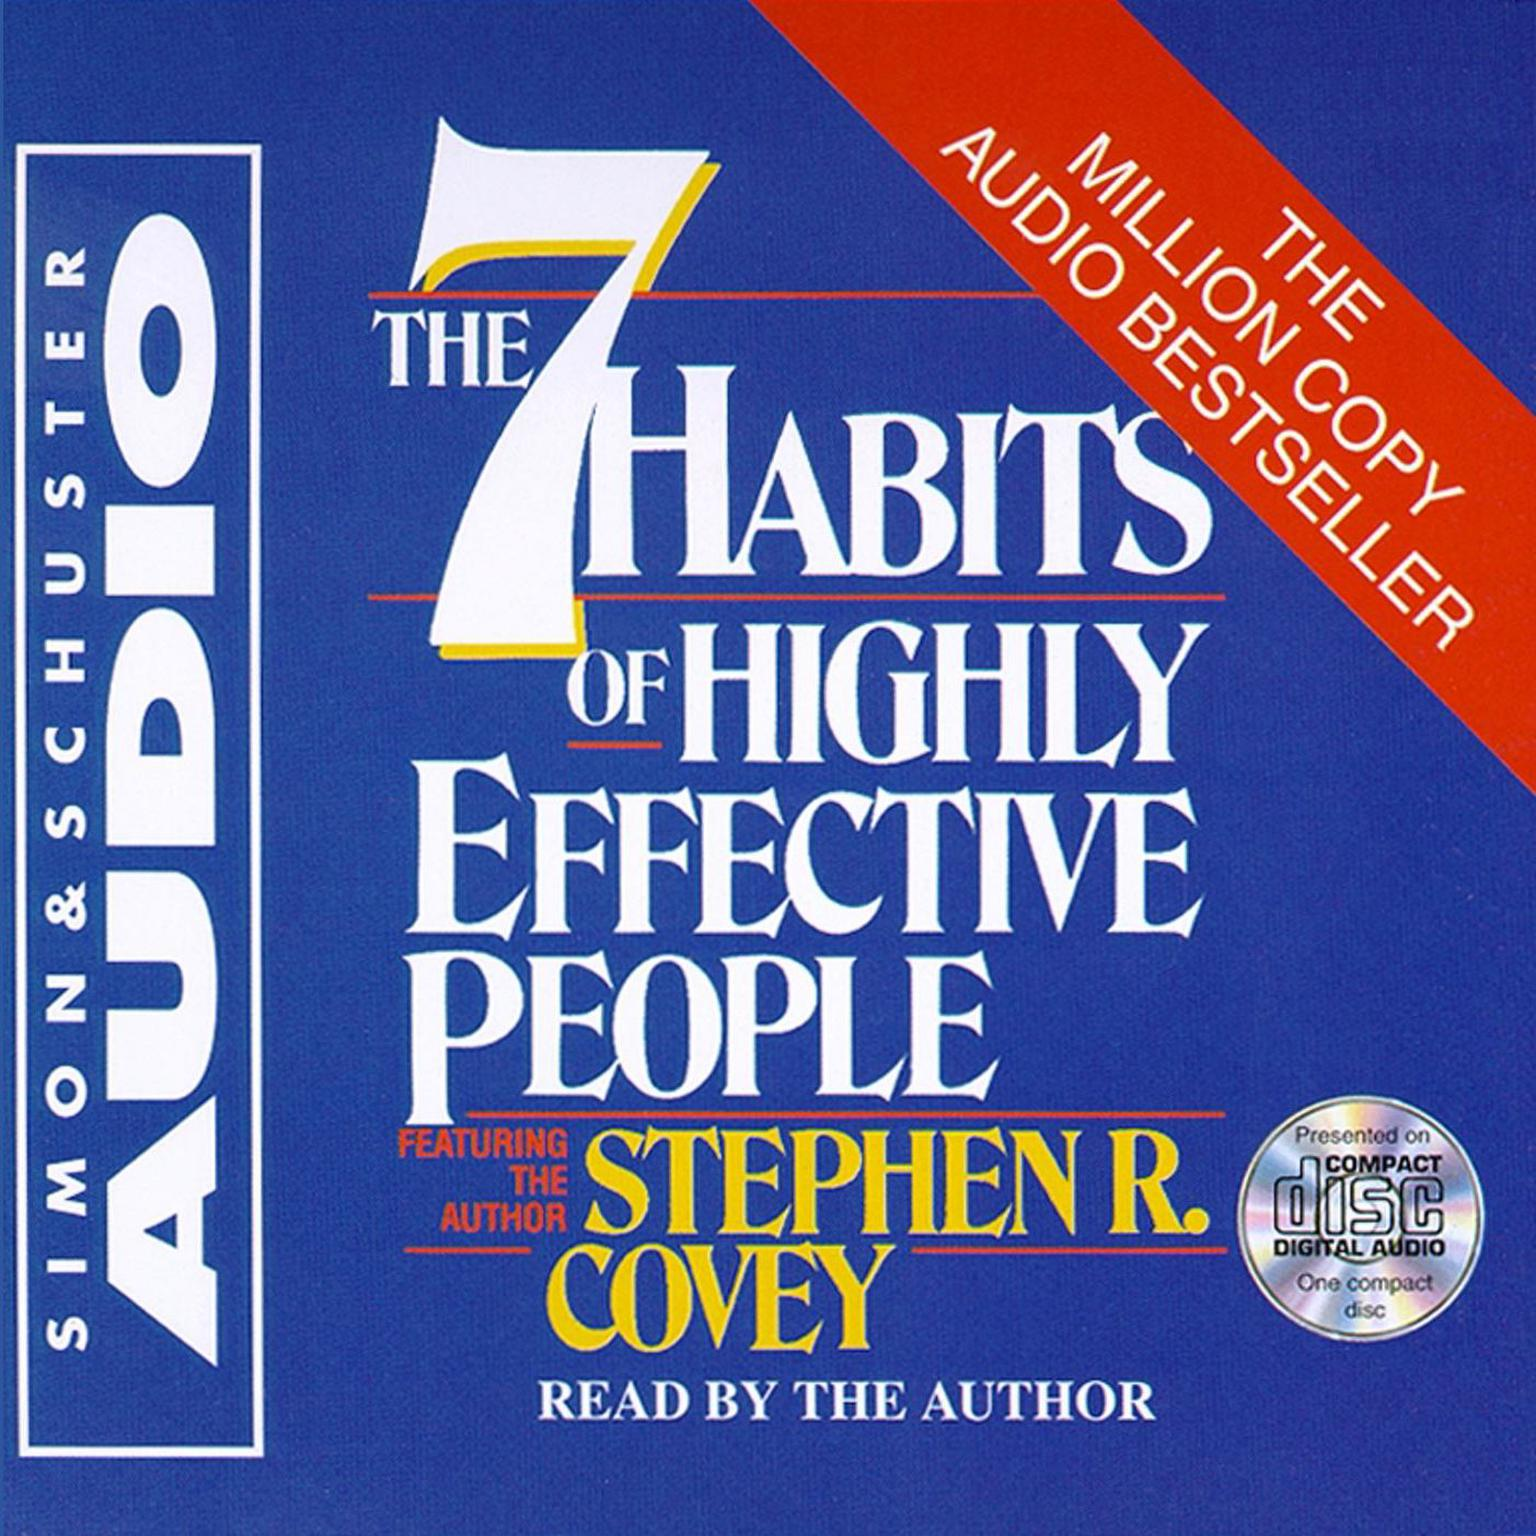 Printable The 7 Habits of Highly Effective People Audiobook Cover Art